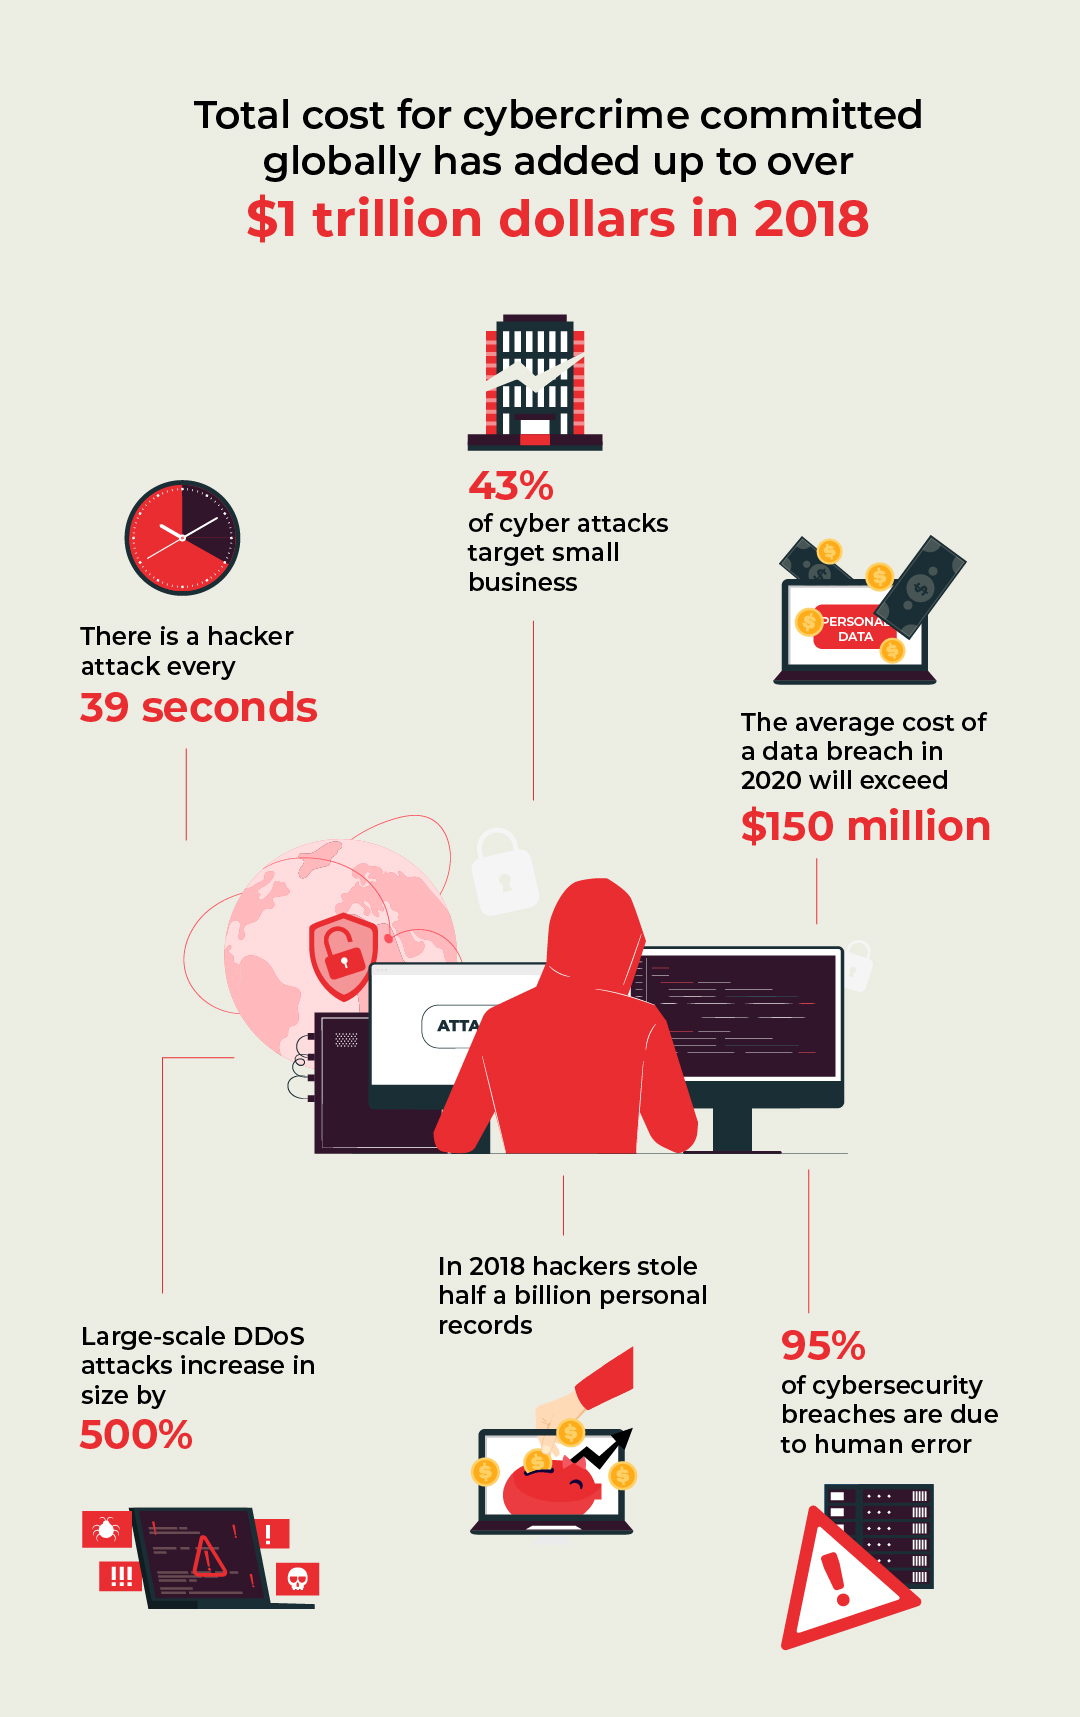 Total cost of cybercrimes